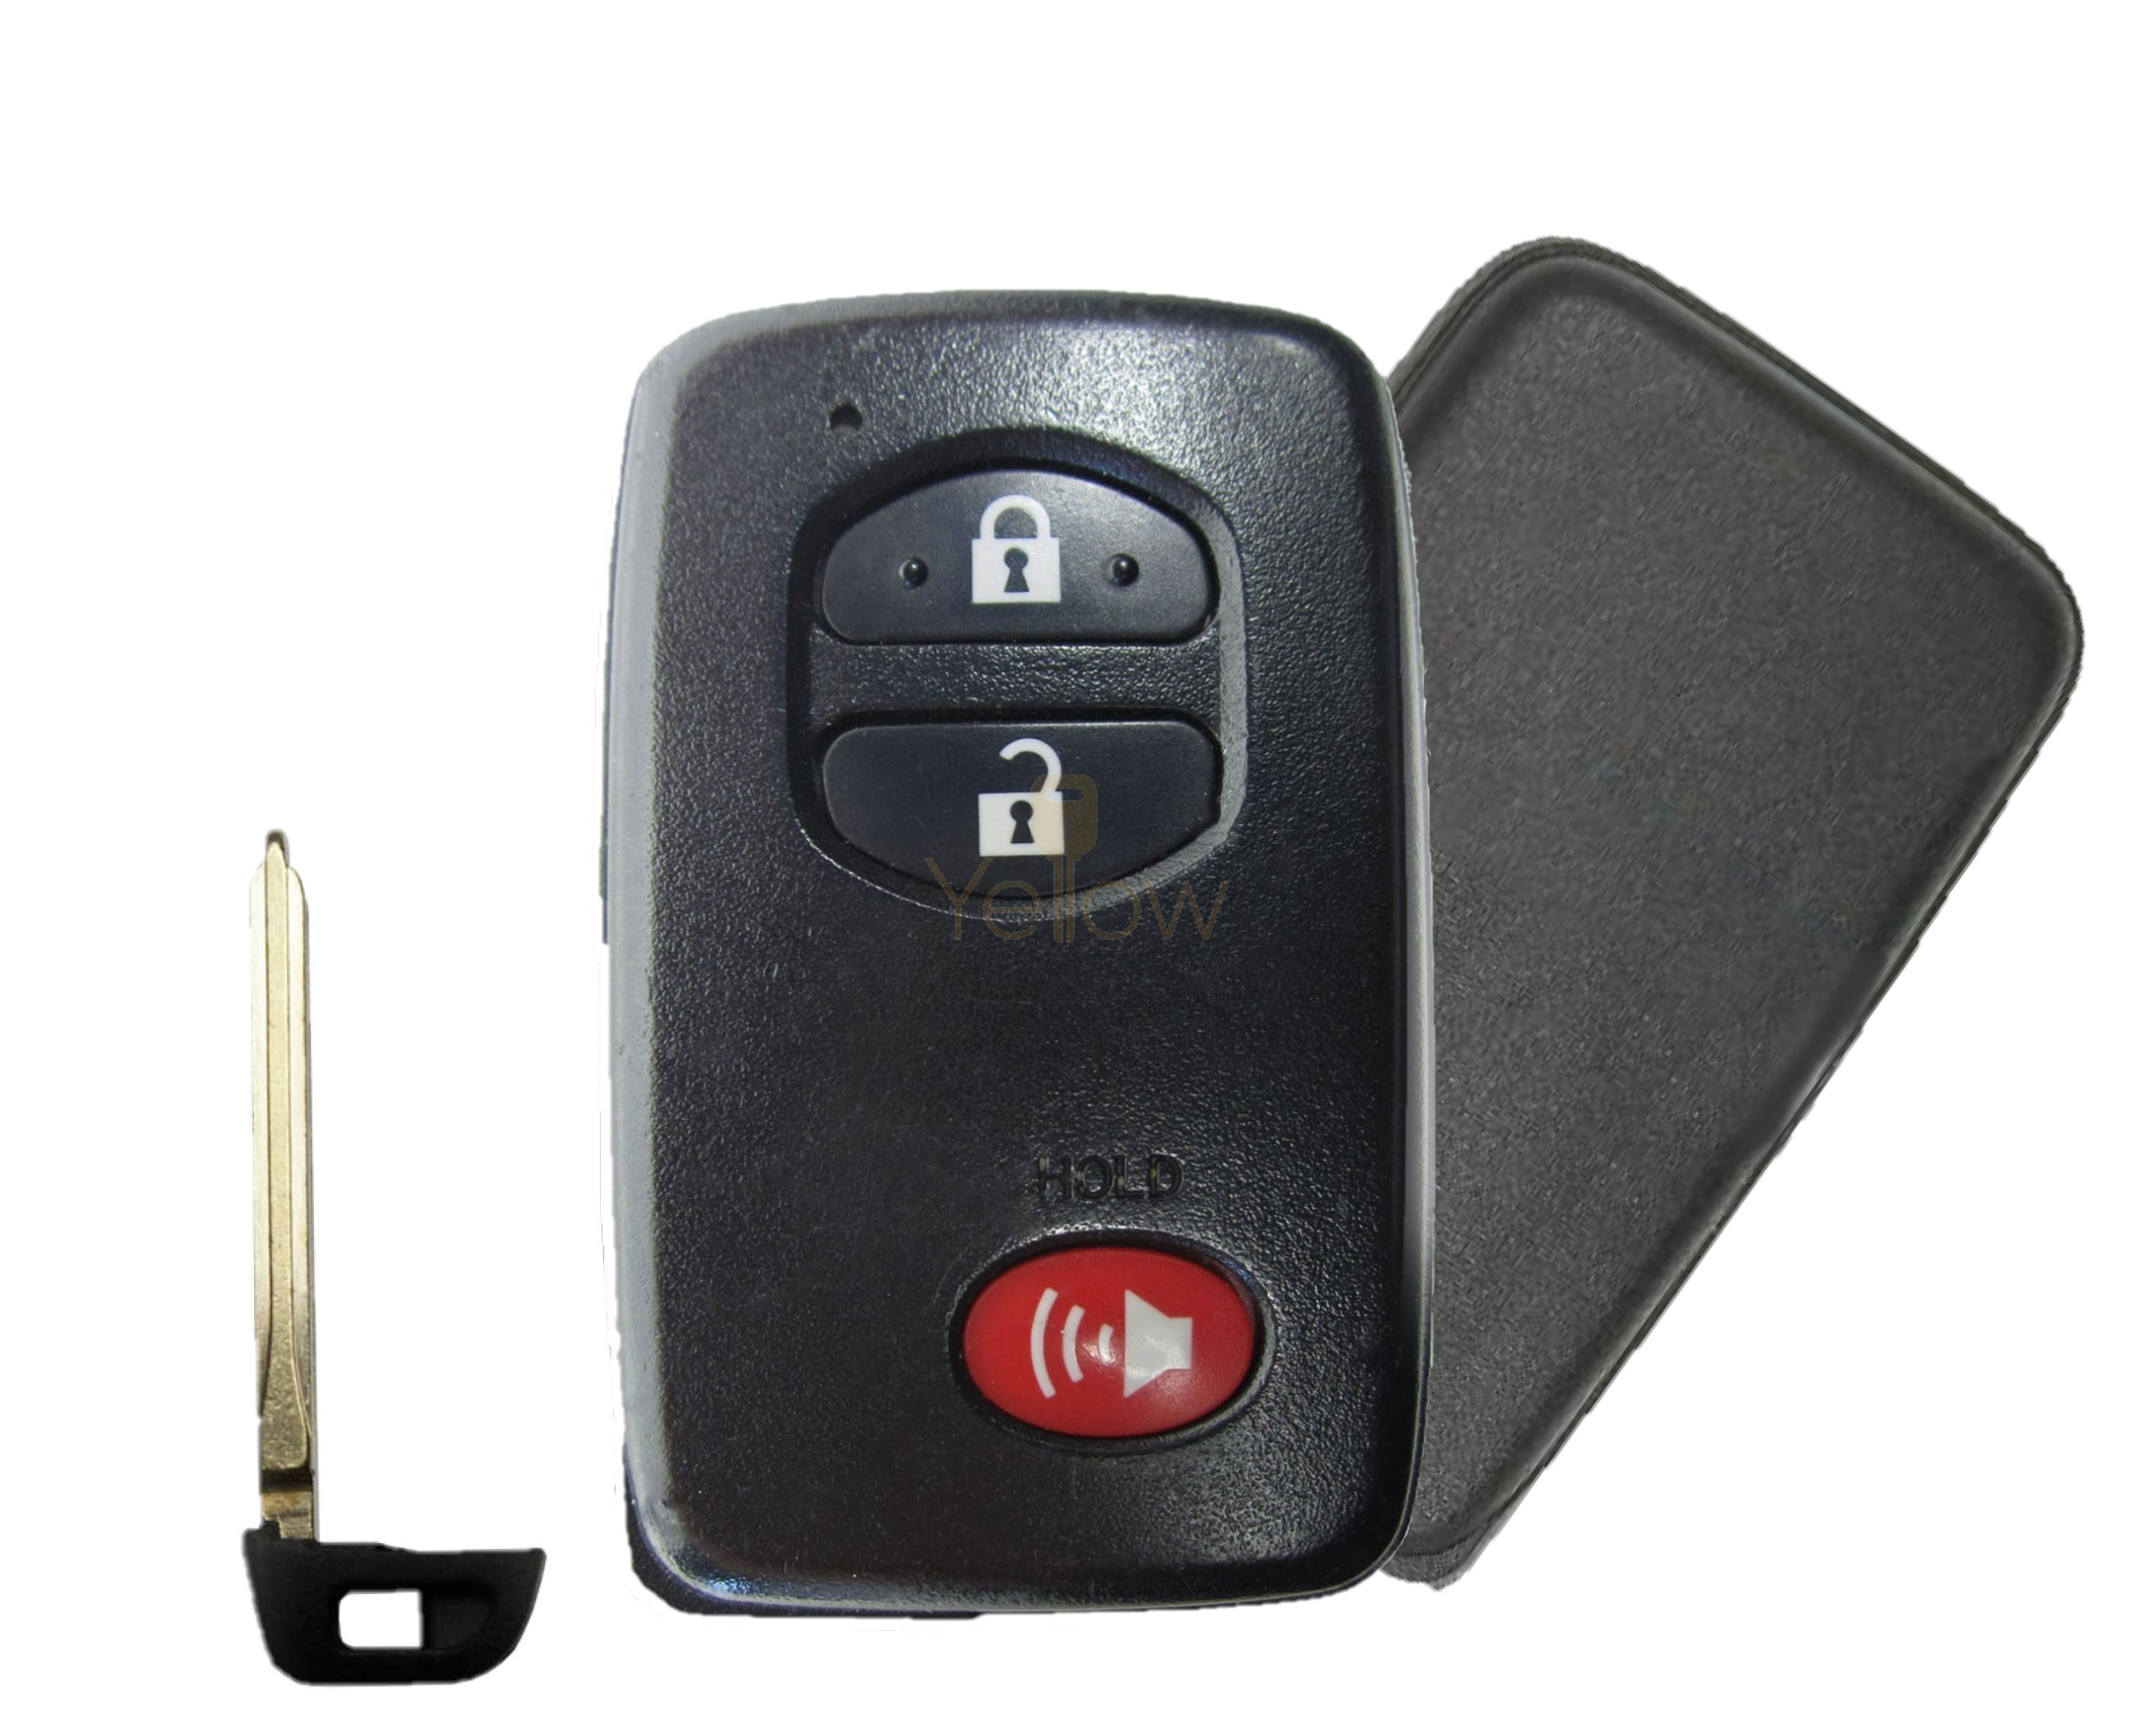 2008-2013 TOYOTA SMART KEY 3B PN (0140 BOARD) 89904-48100